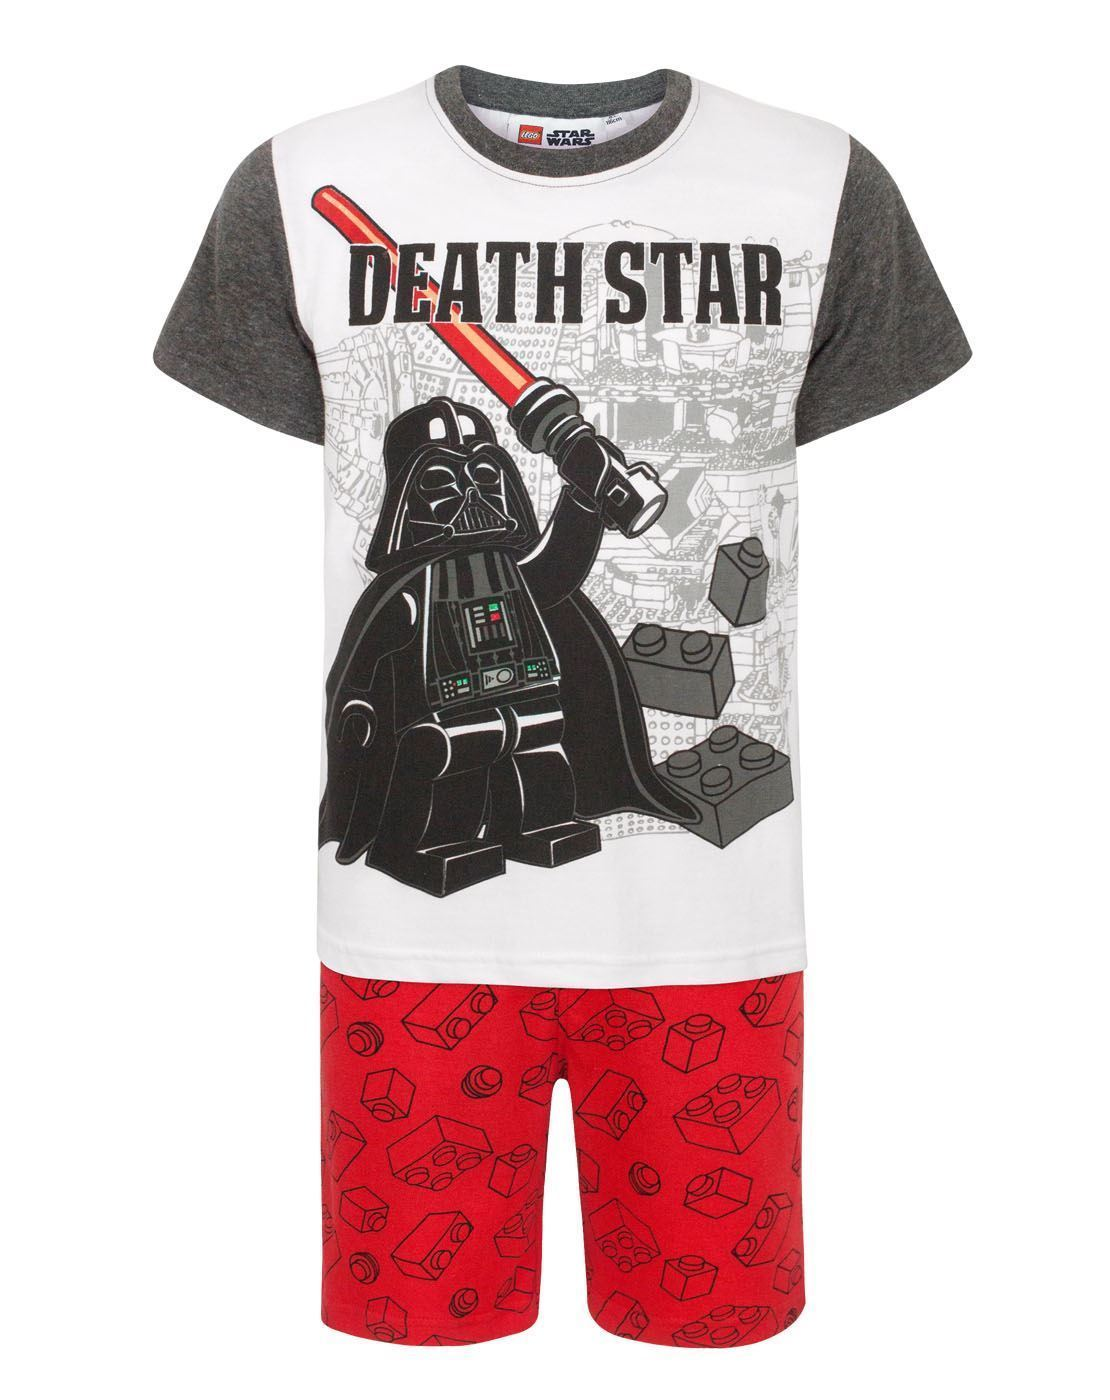 Lego Star Wars Death Star Boy's Pyjamas